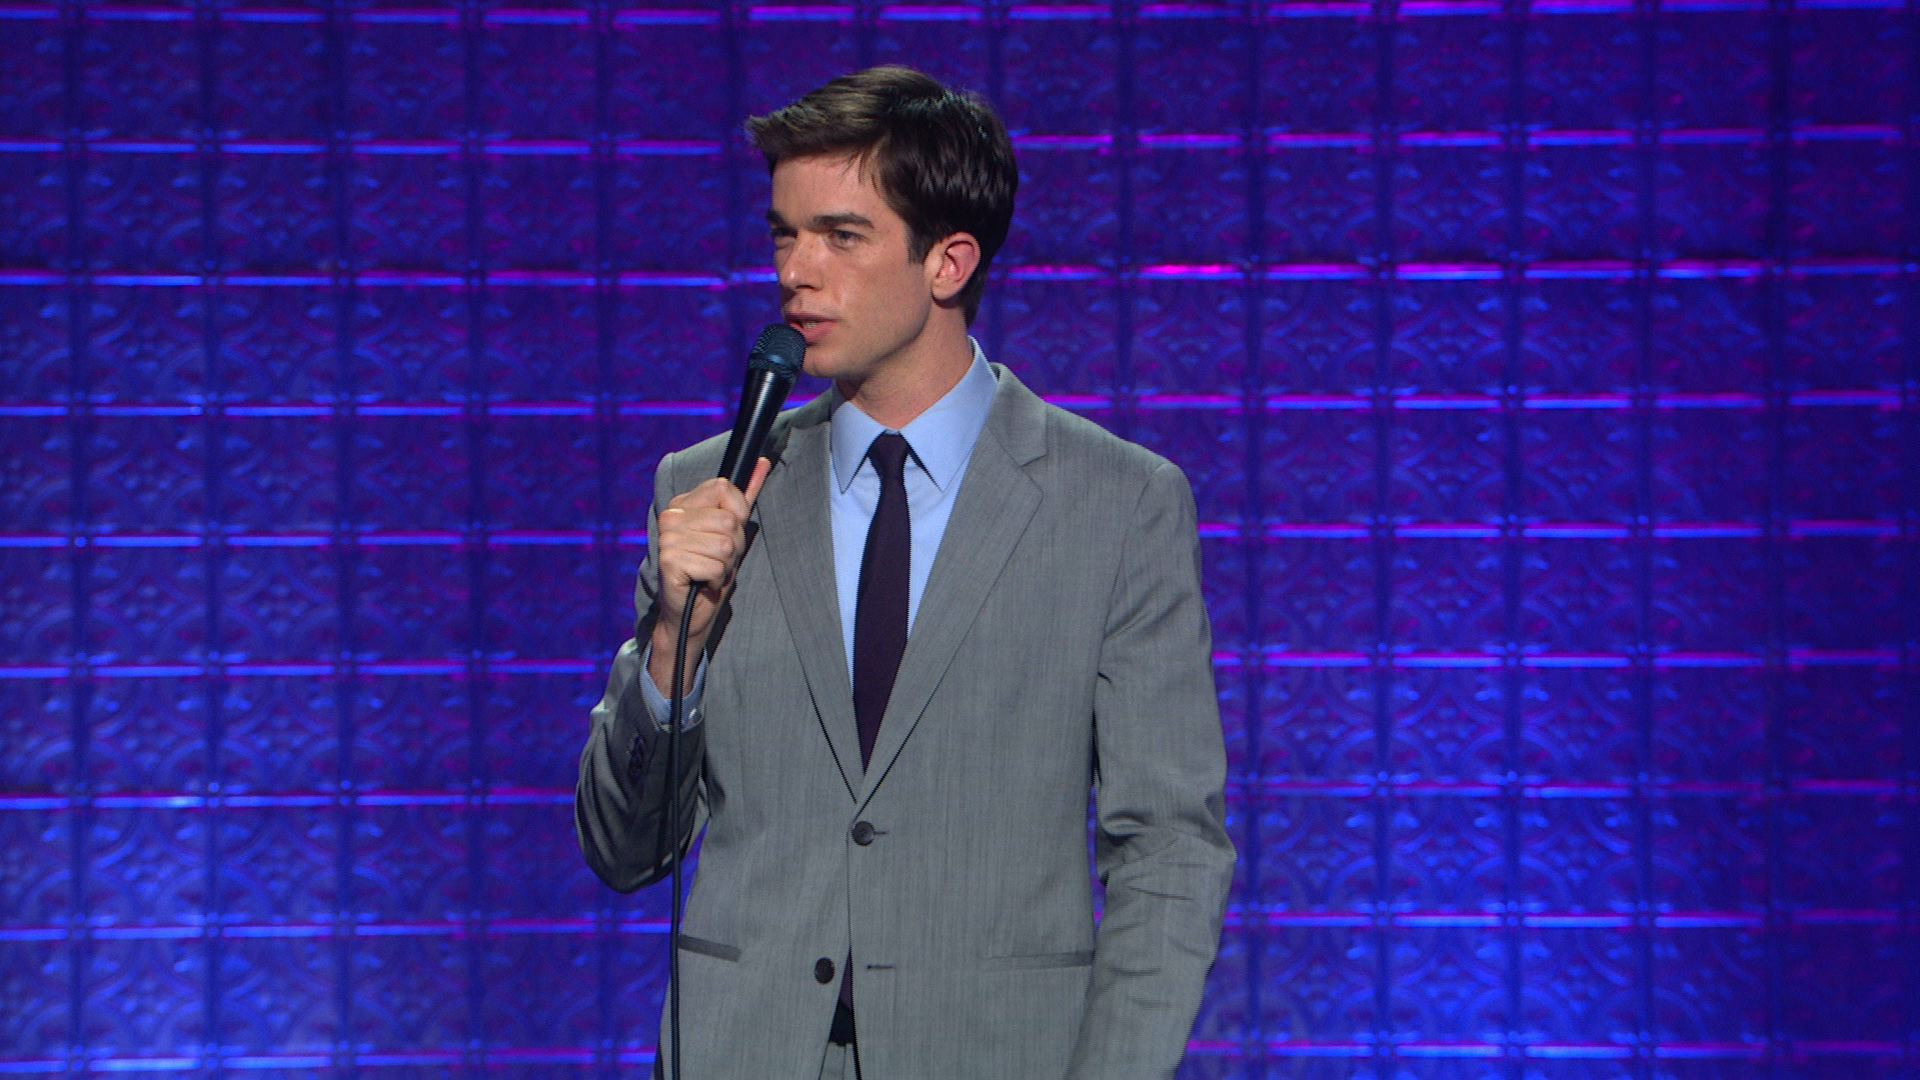 John Mulaney - Old Queen